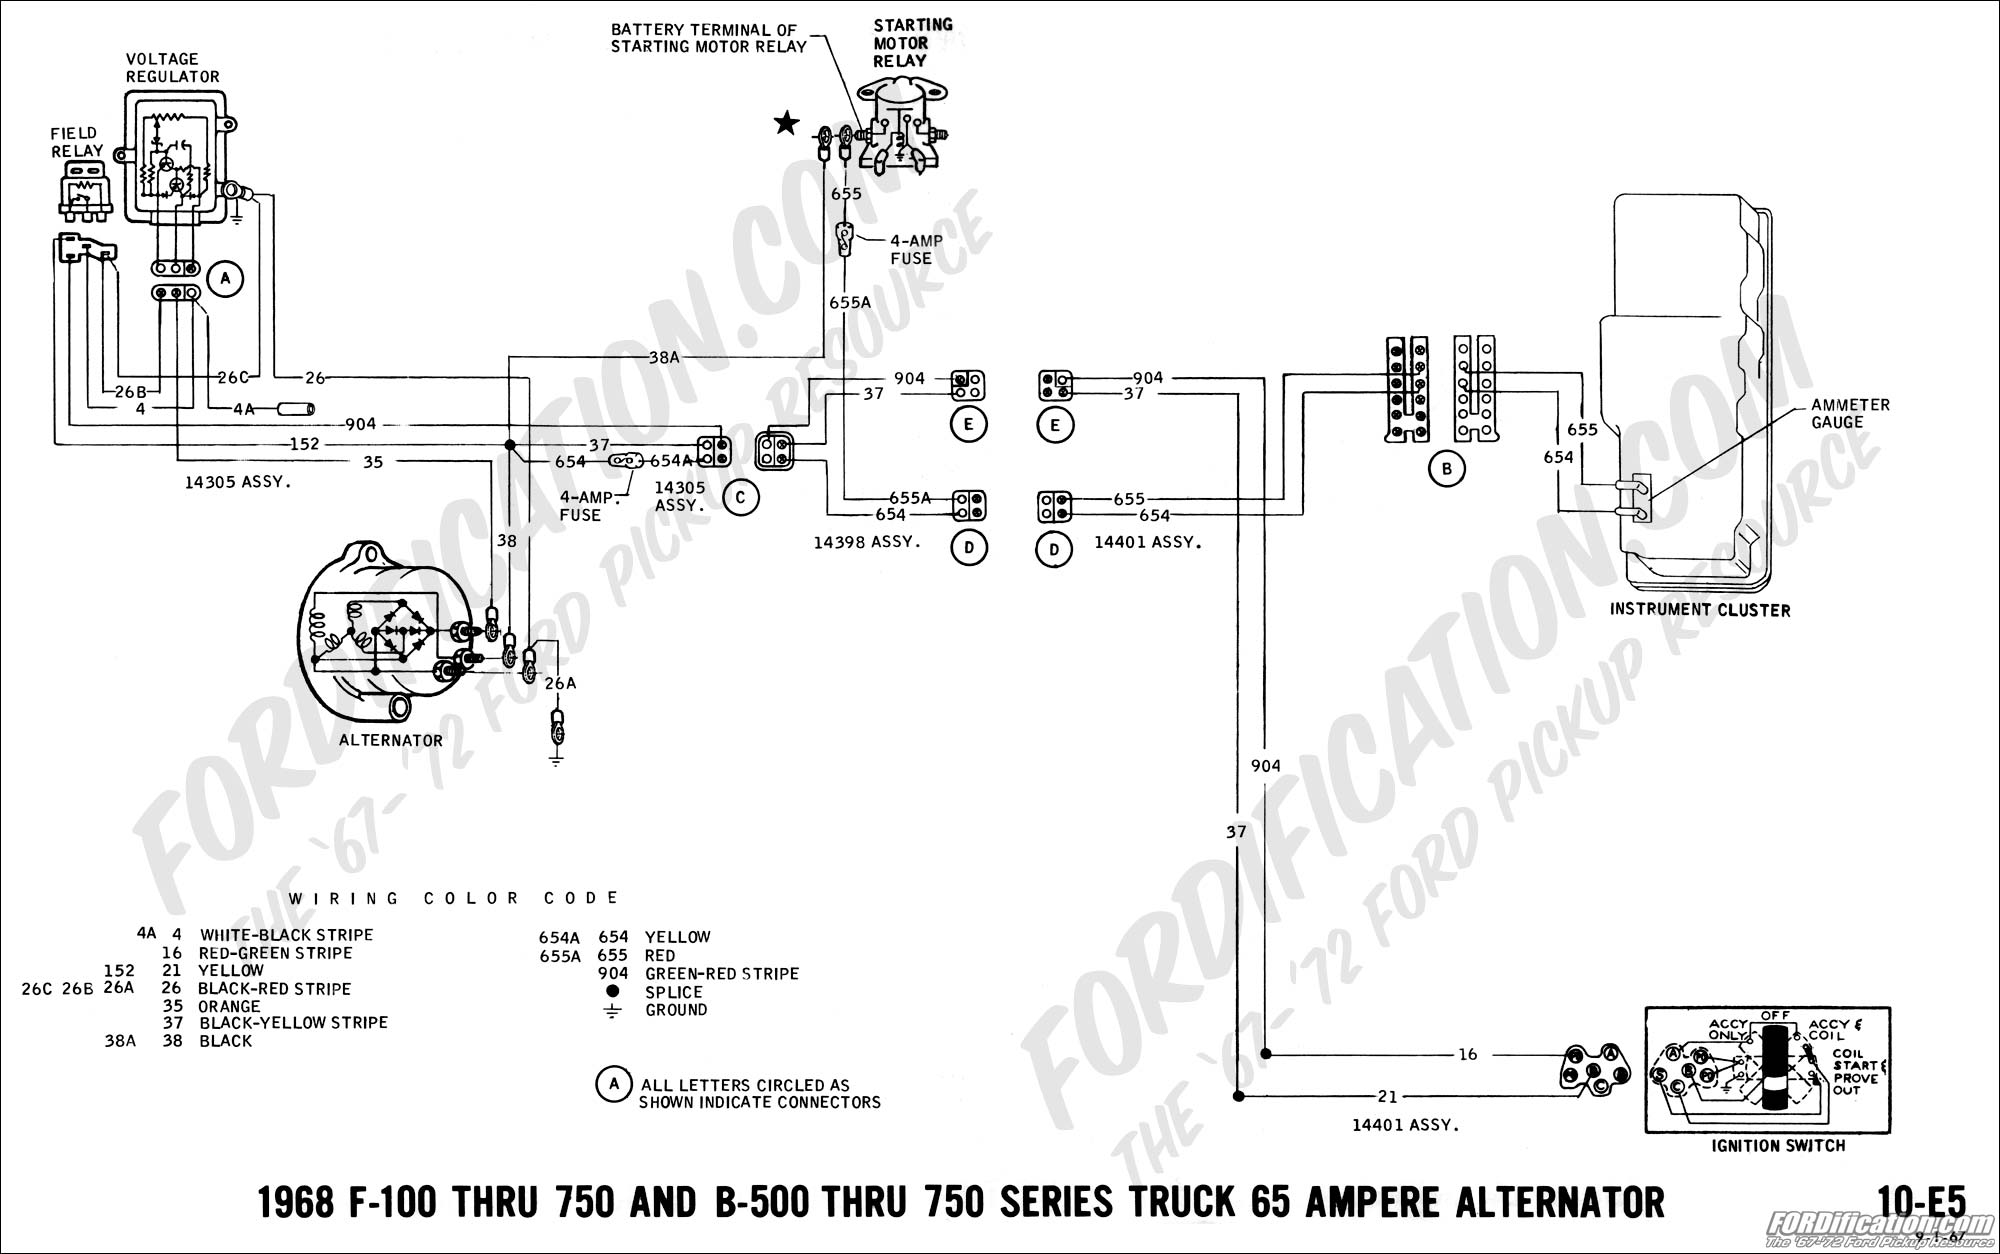 68 07 1968 ford f100 wiring diagram 1965 ford f100 alternator wiring 1965 ford mustang wiring diagrams at suagrazia.org